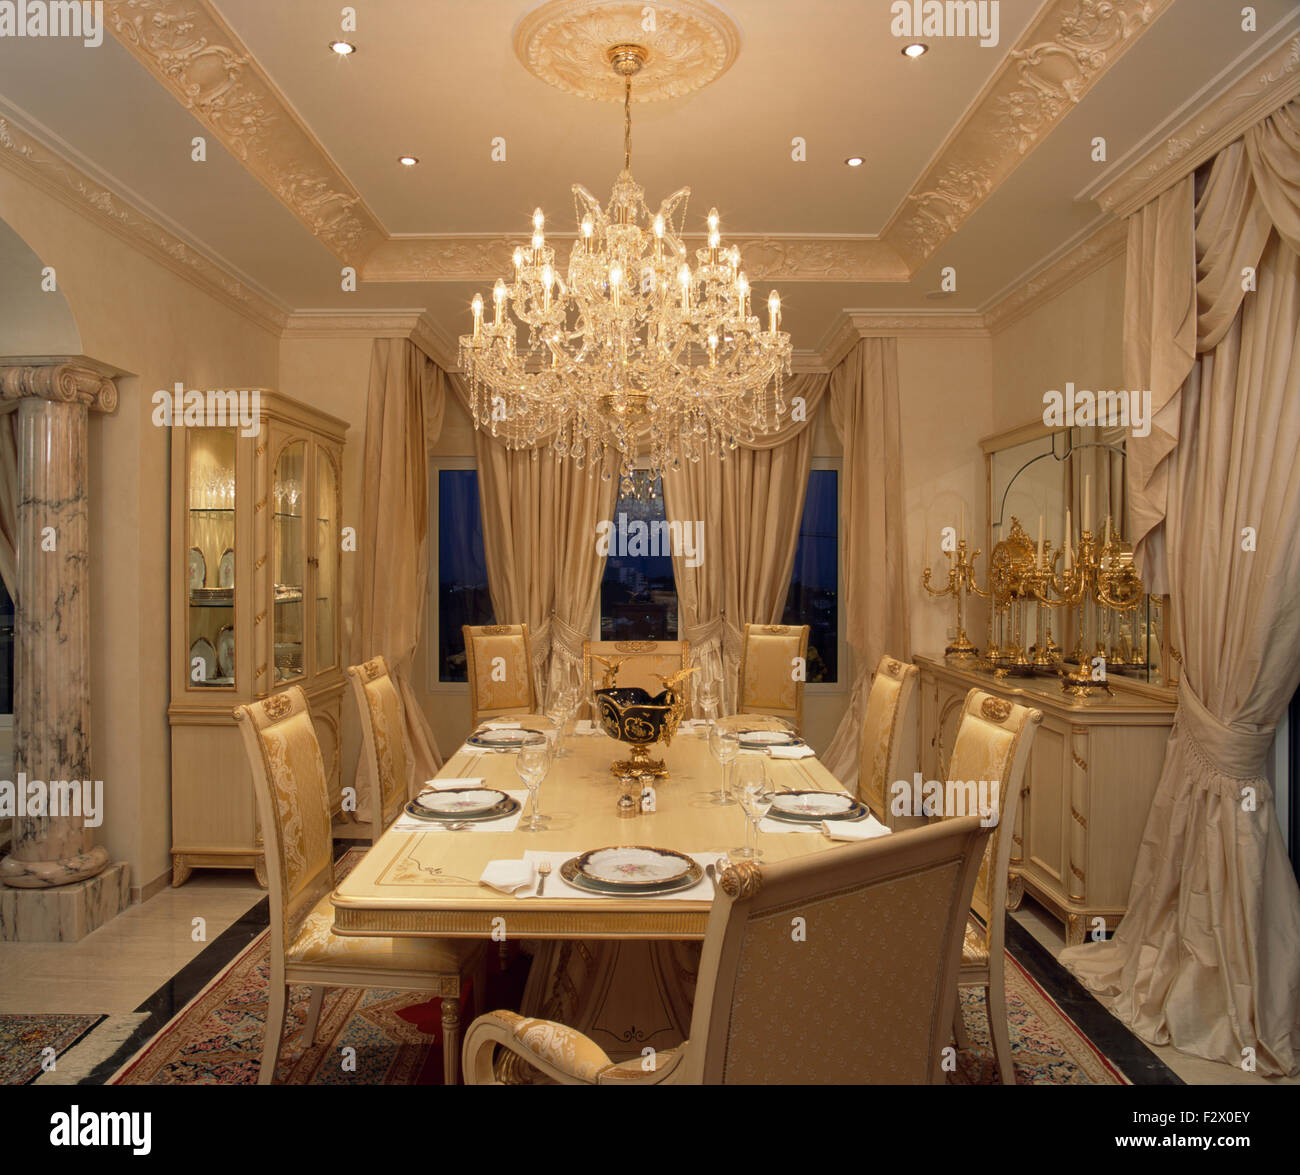 ornate glass chandelier above table set for dinner in opulent spanish dining room with cream silk drapes